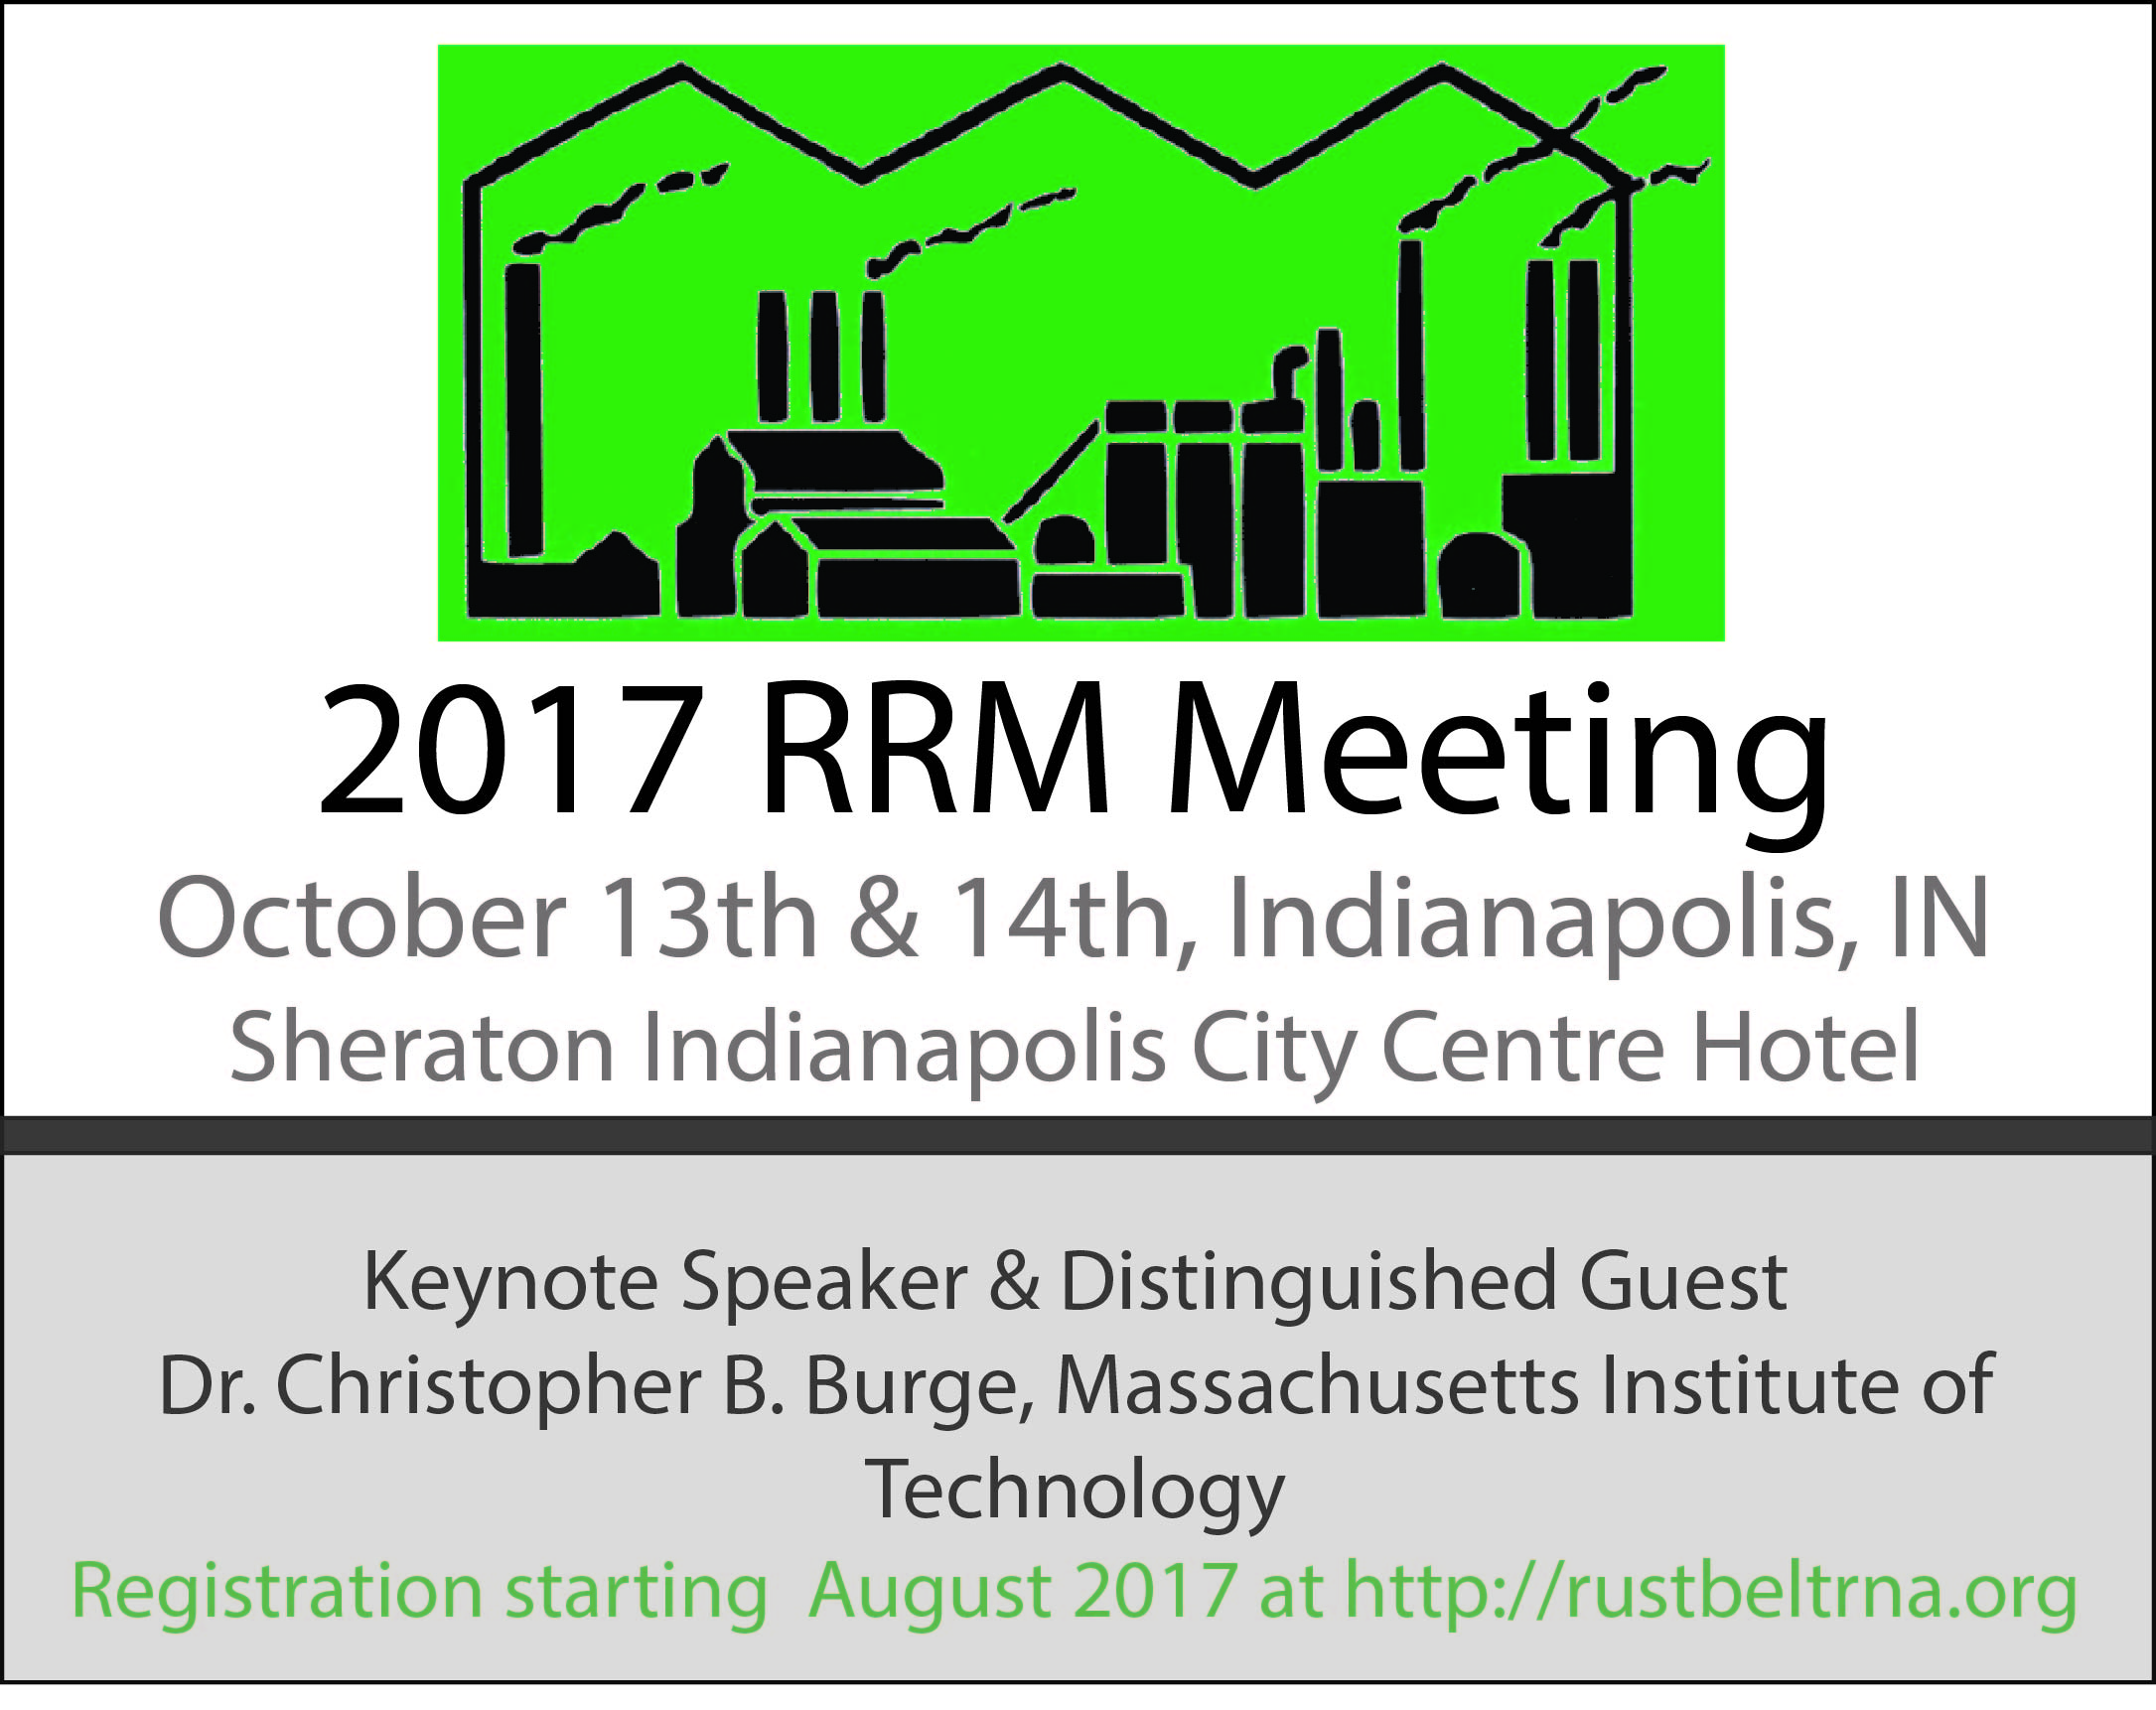 2017 RRM Save the Date notice